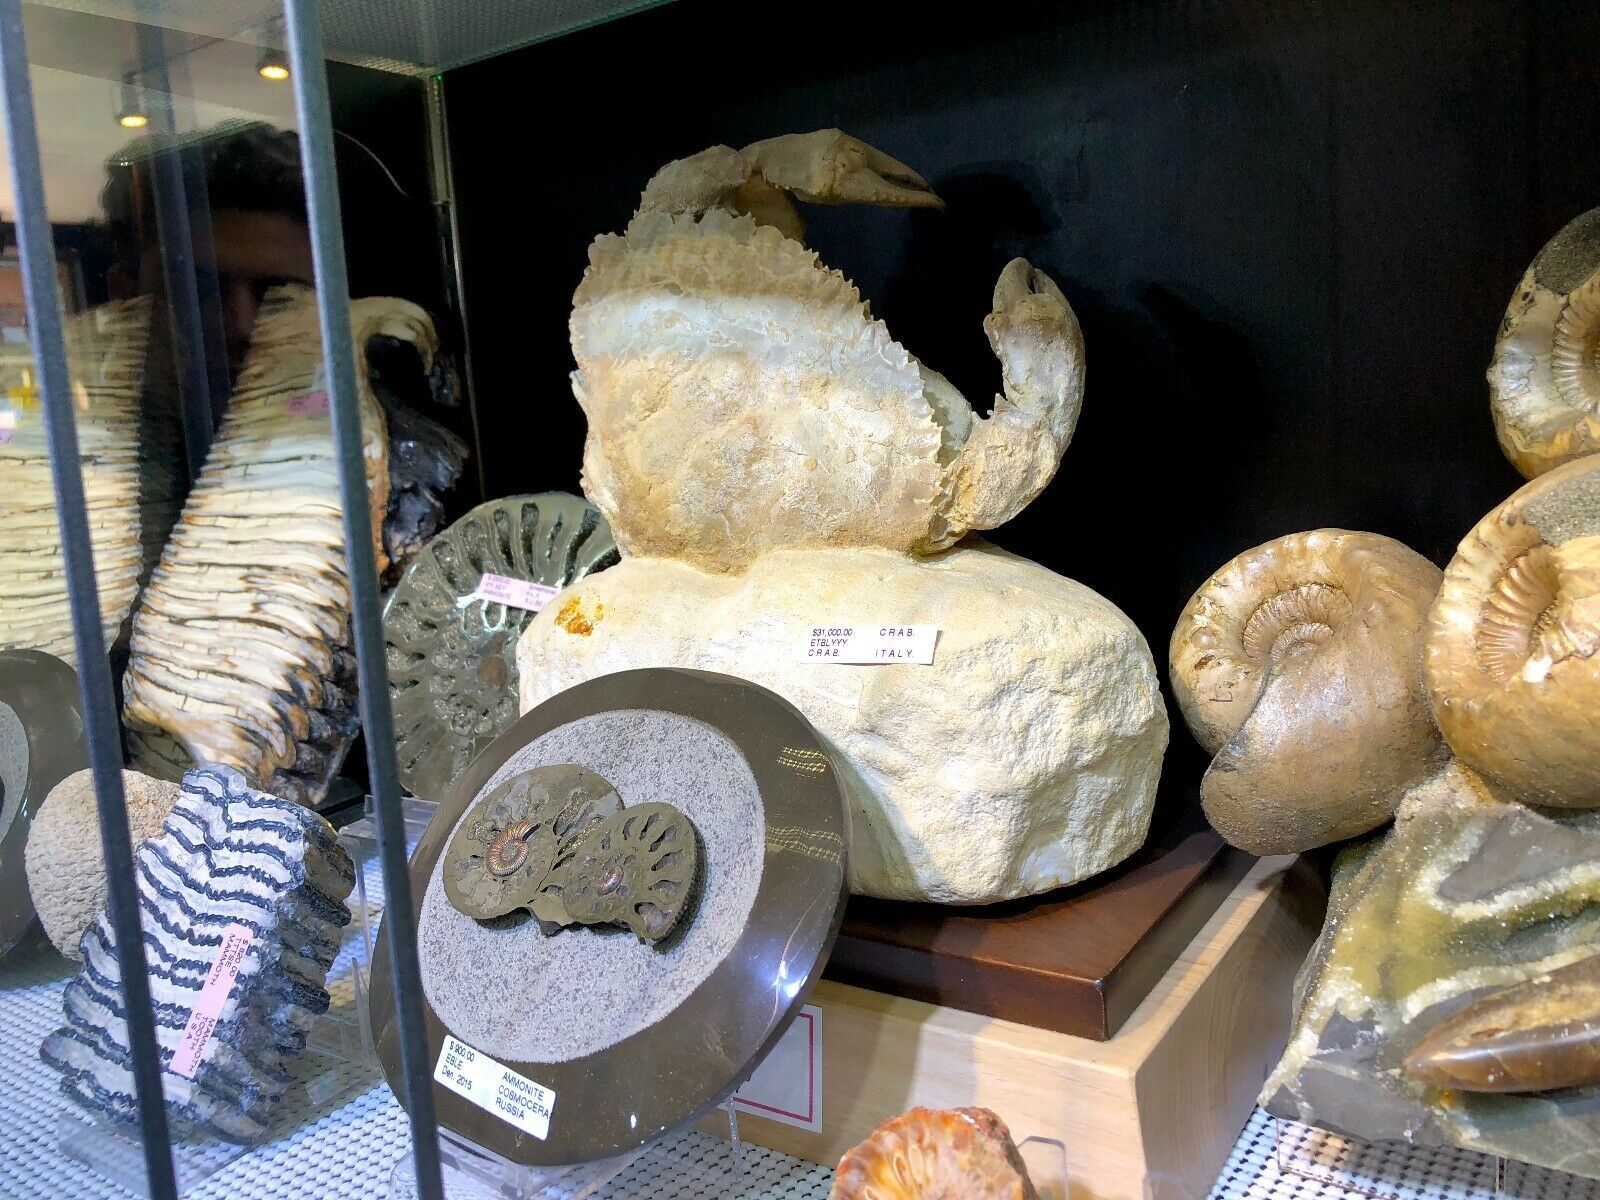 FOSSILIZED CRAB ITALY HOME DISPLAY DINOSAUR FOSSIL PIRATE GOLD COINS JURASSIC